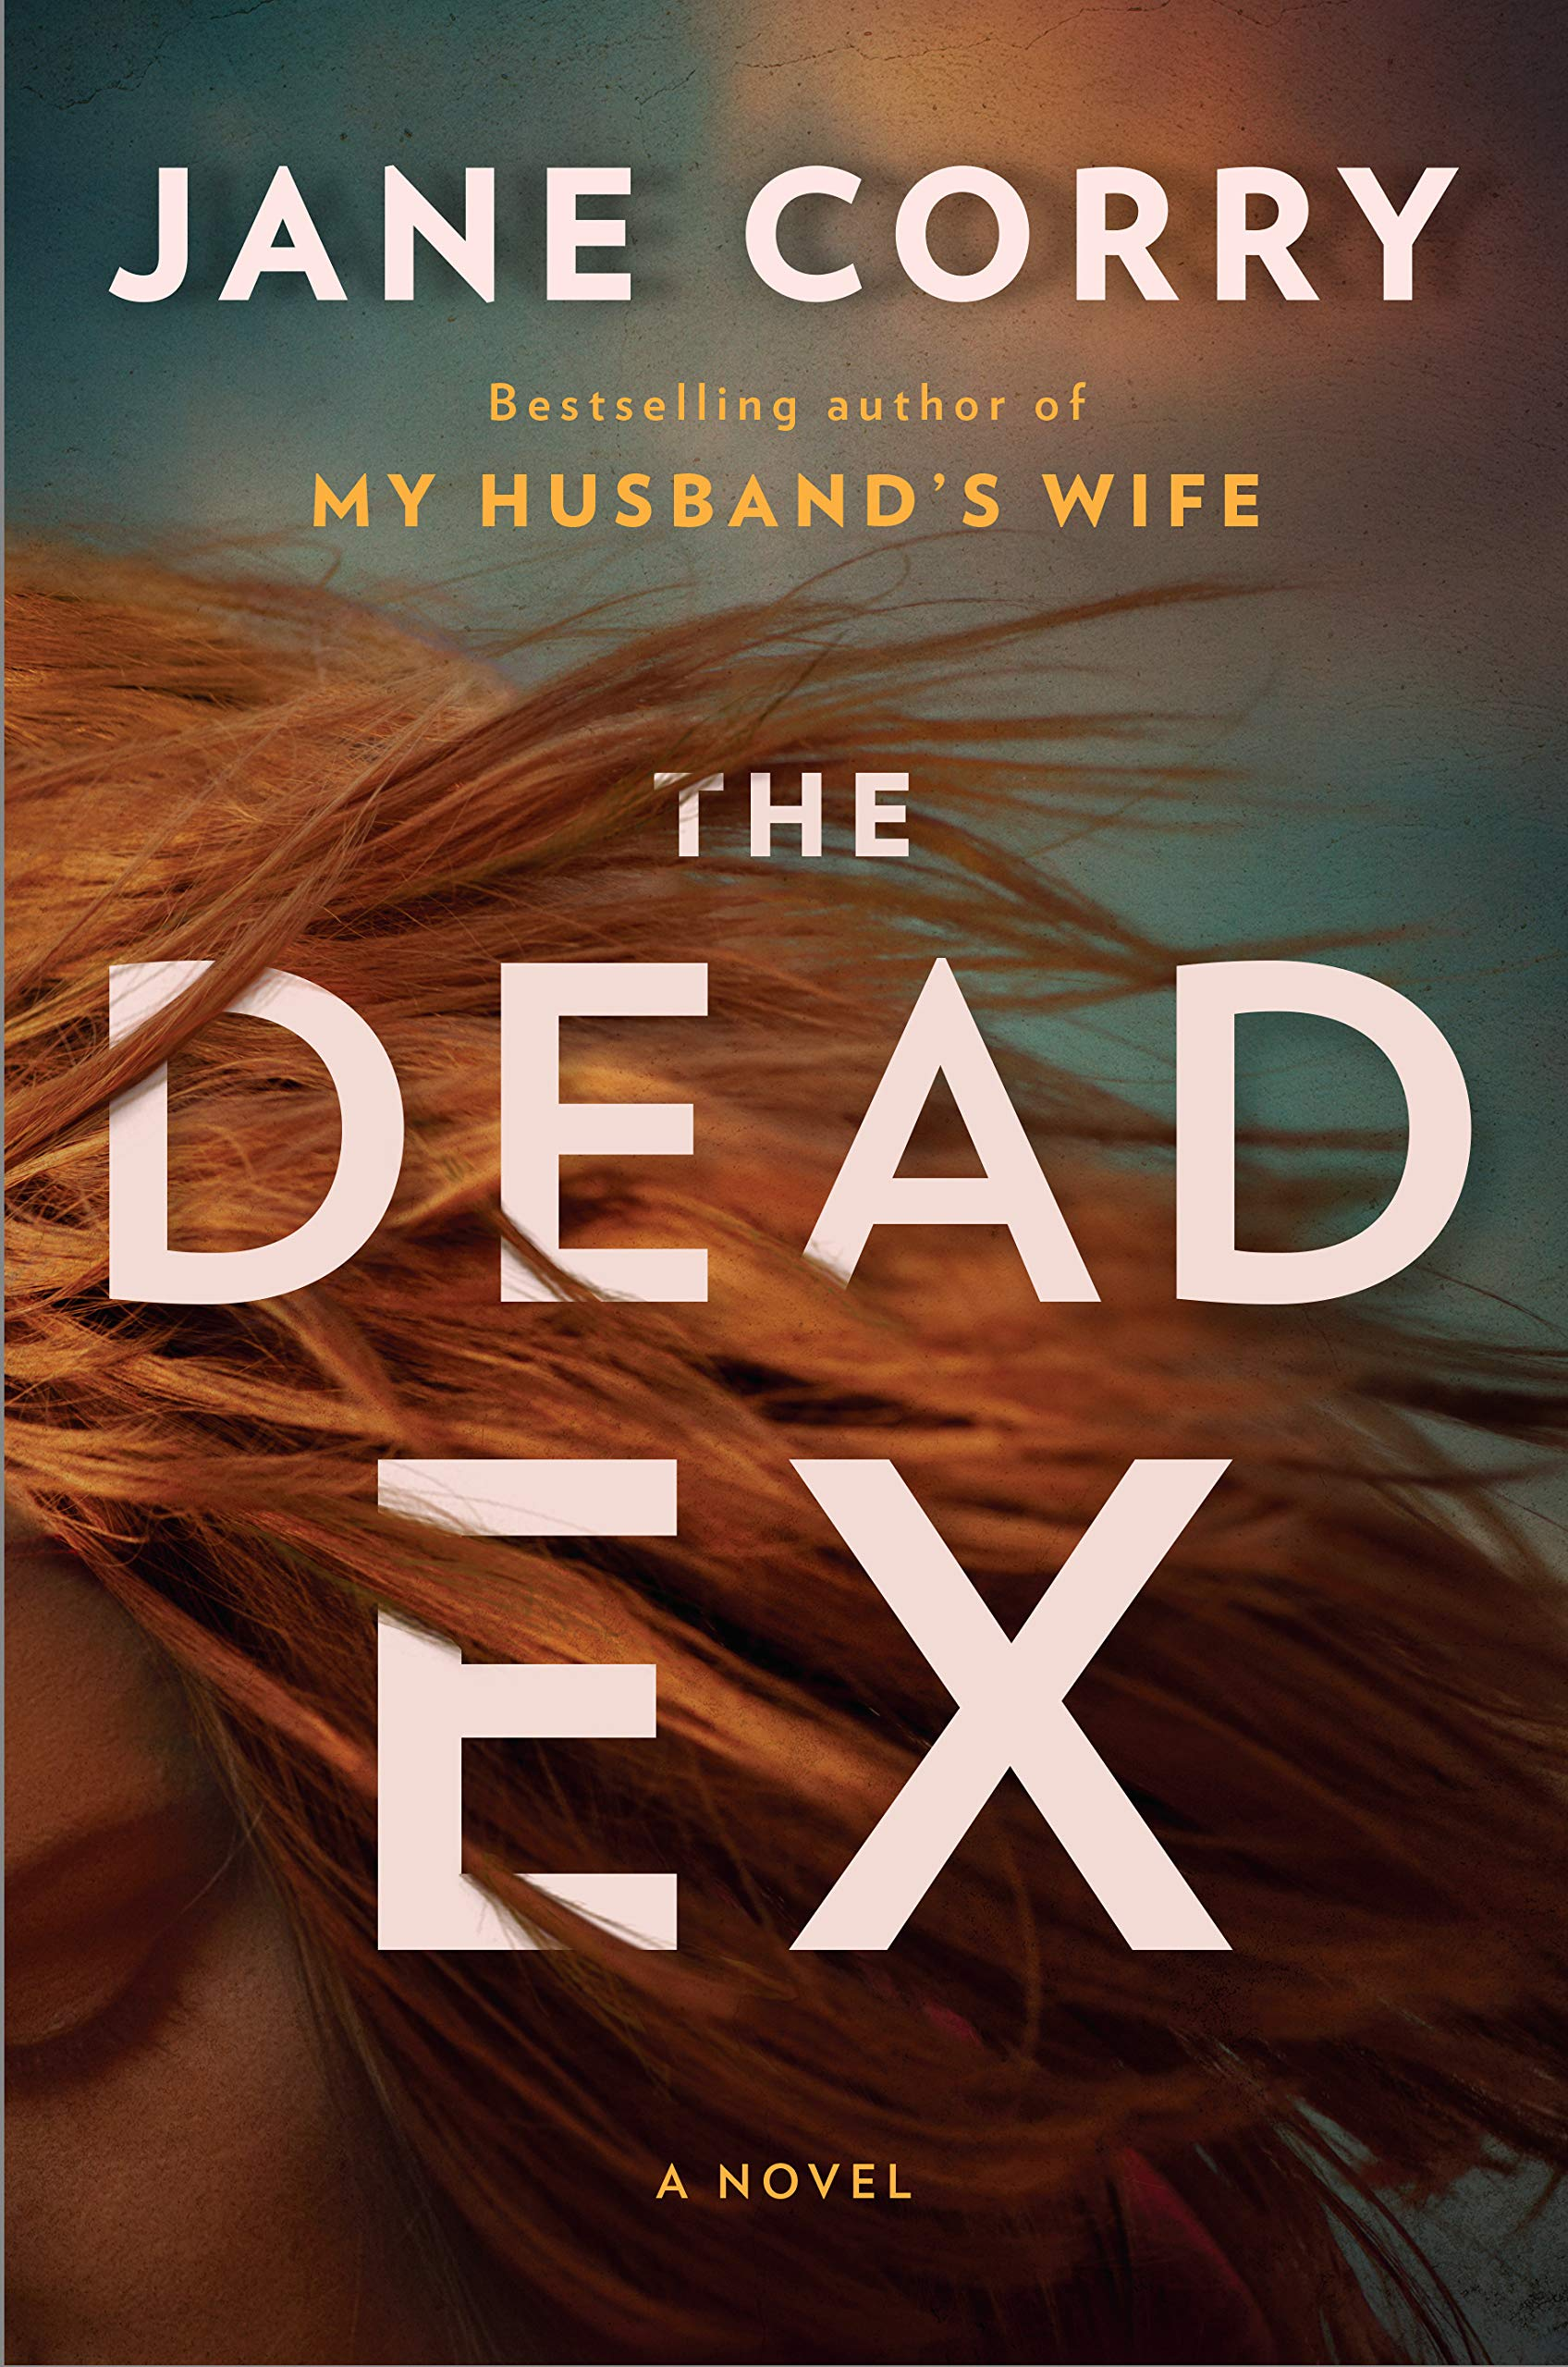 """THE DEAD EX by Jane Corry   Vicki's ex-husband has just gone missing. She insists she last saw him years ago when they divorced, but the police don't believe her and her memory's hardly reliable--what if she did have something to do with it? Meanwhile, Scarlet and her mother Zelda are down on their luck, and at eight years old, Scarlet doesn't know that the """"game"""" her mother forces her to play is really just to deal drugs. Soon, Zelda is caught, and Scarlet is forced into years of foster care--an experience that will shape the rest of her life. Elsewhere, David's new wife, Tanya, is the one who reported him missing, but what really happened on the night of David's disappearance? The answers lie in the connection between these four women--and the one person they can't escape."""